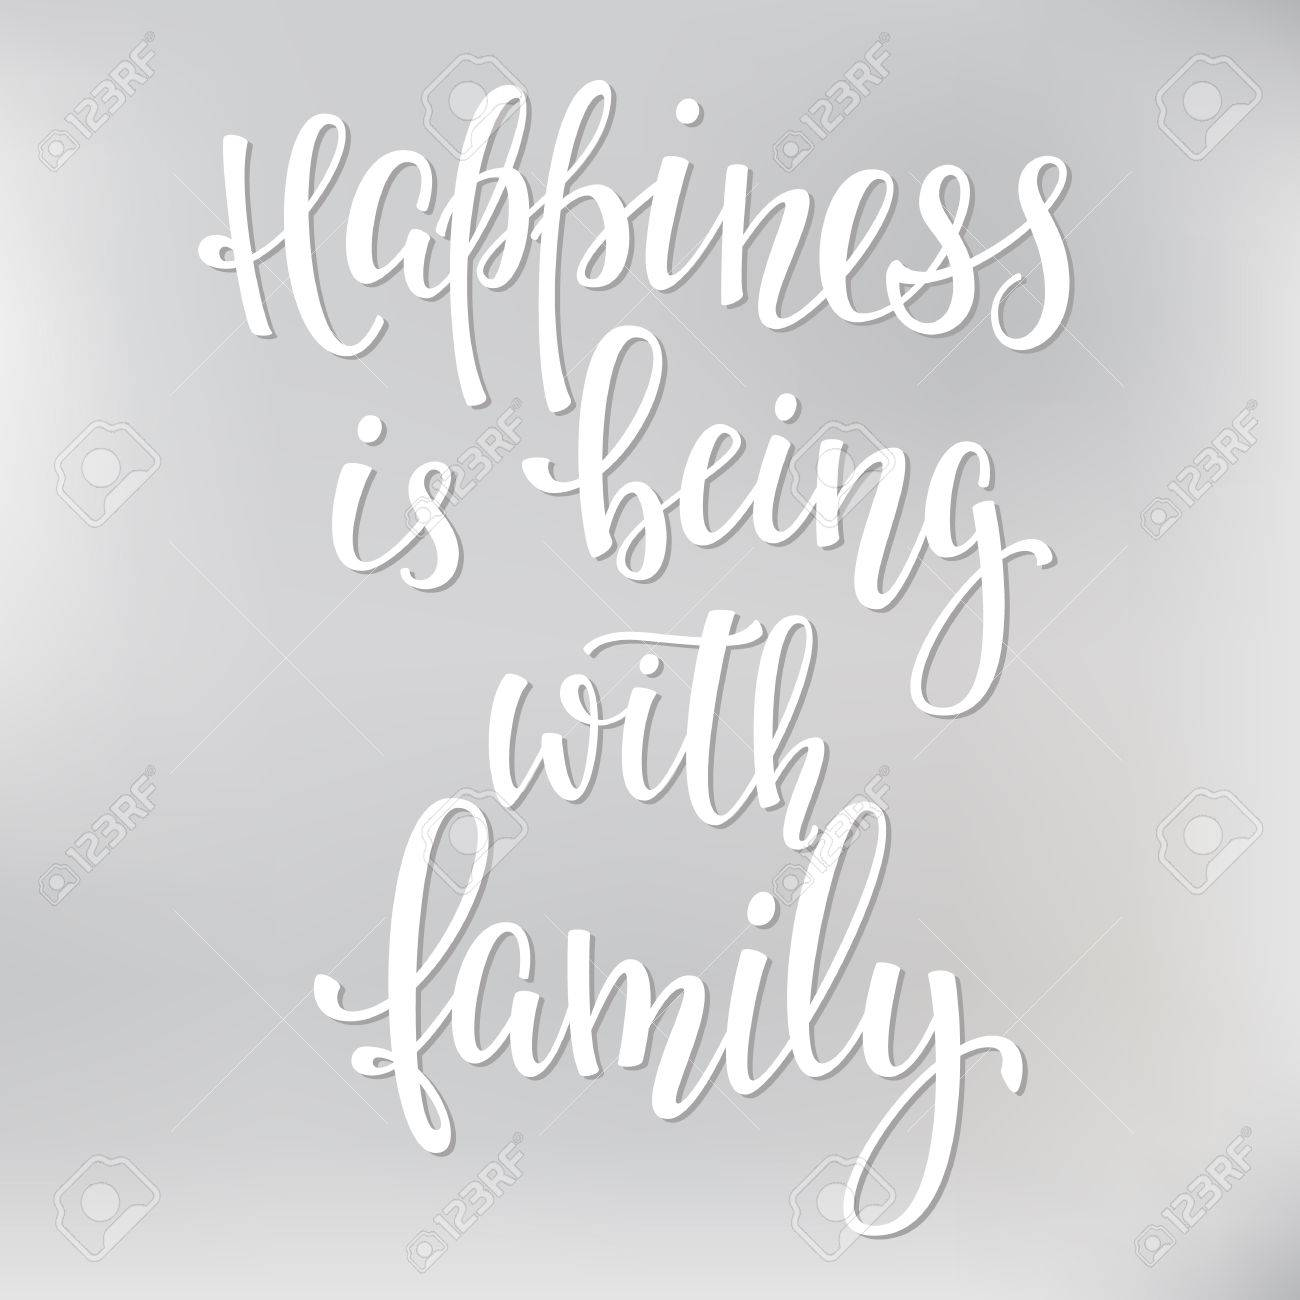 Happiness is being with family quote lettering. Calligraphy inspiration graphic design typography element. Hand written postcard. - 64910345